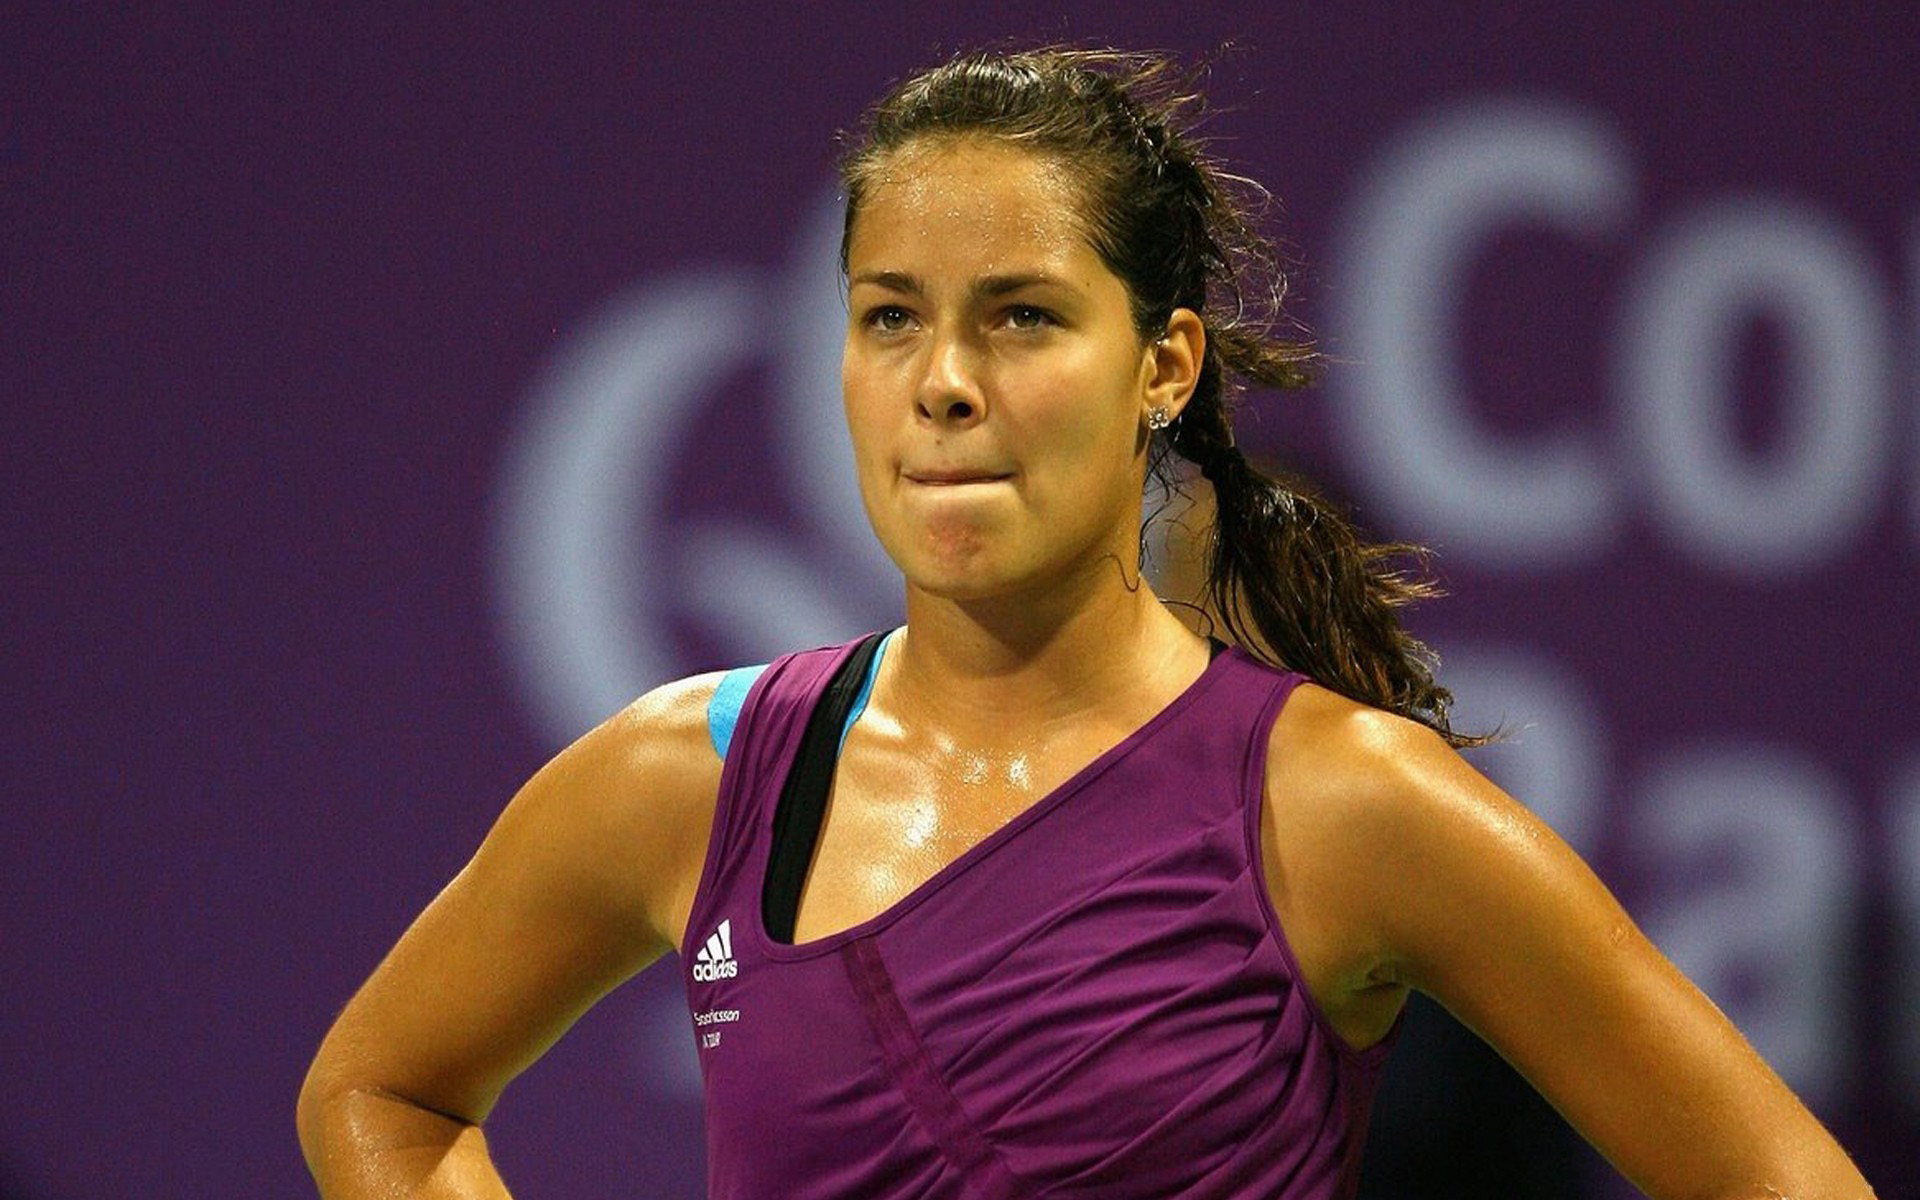 Ana Ivanovic wallpaper download